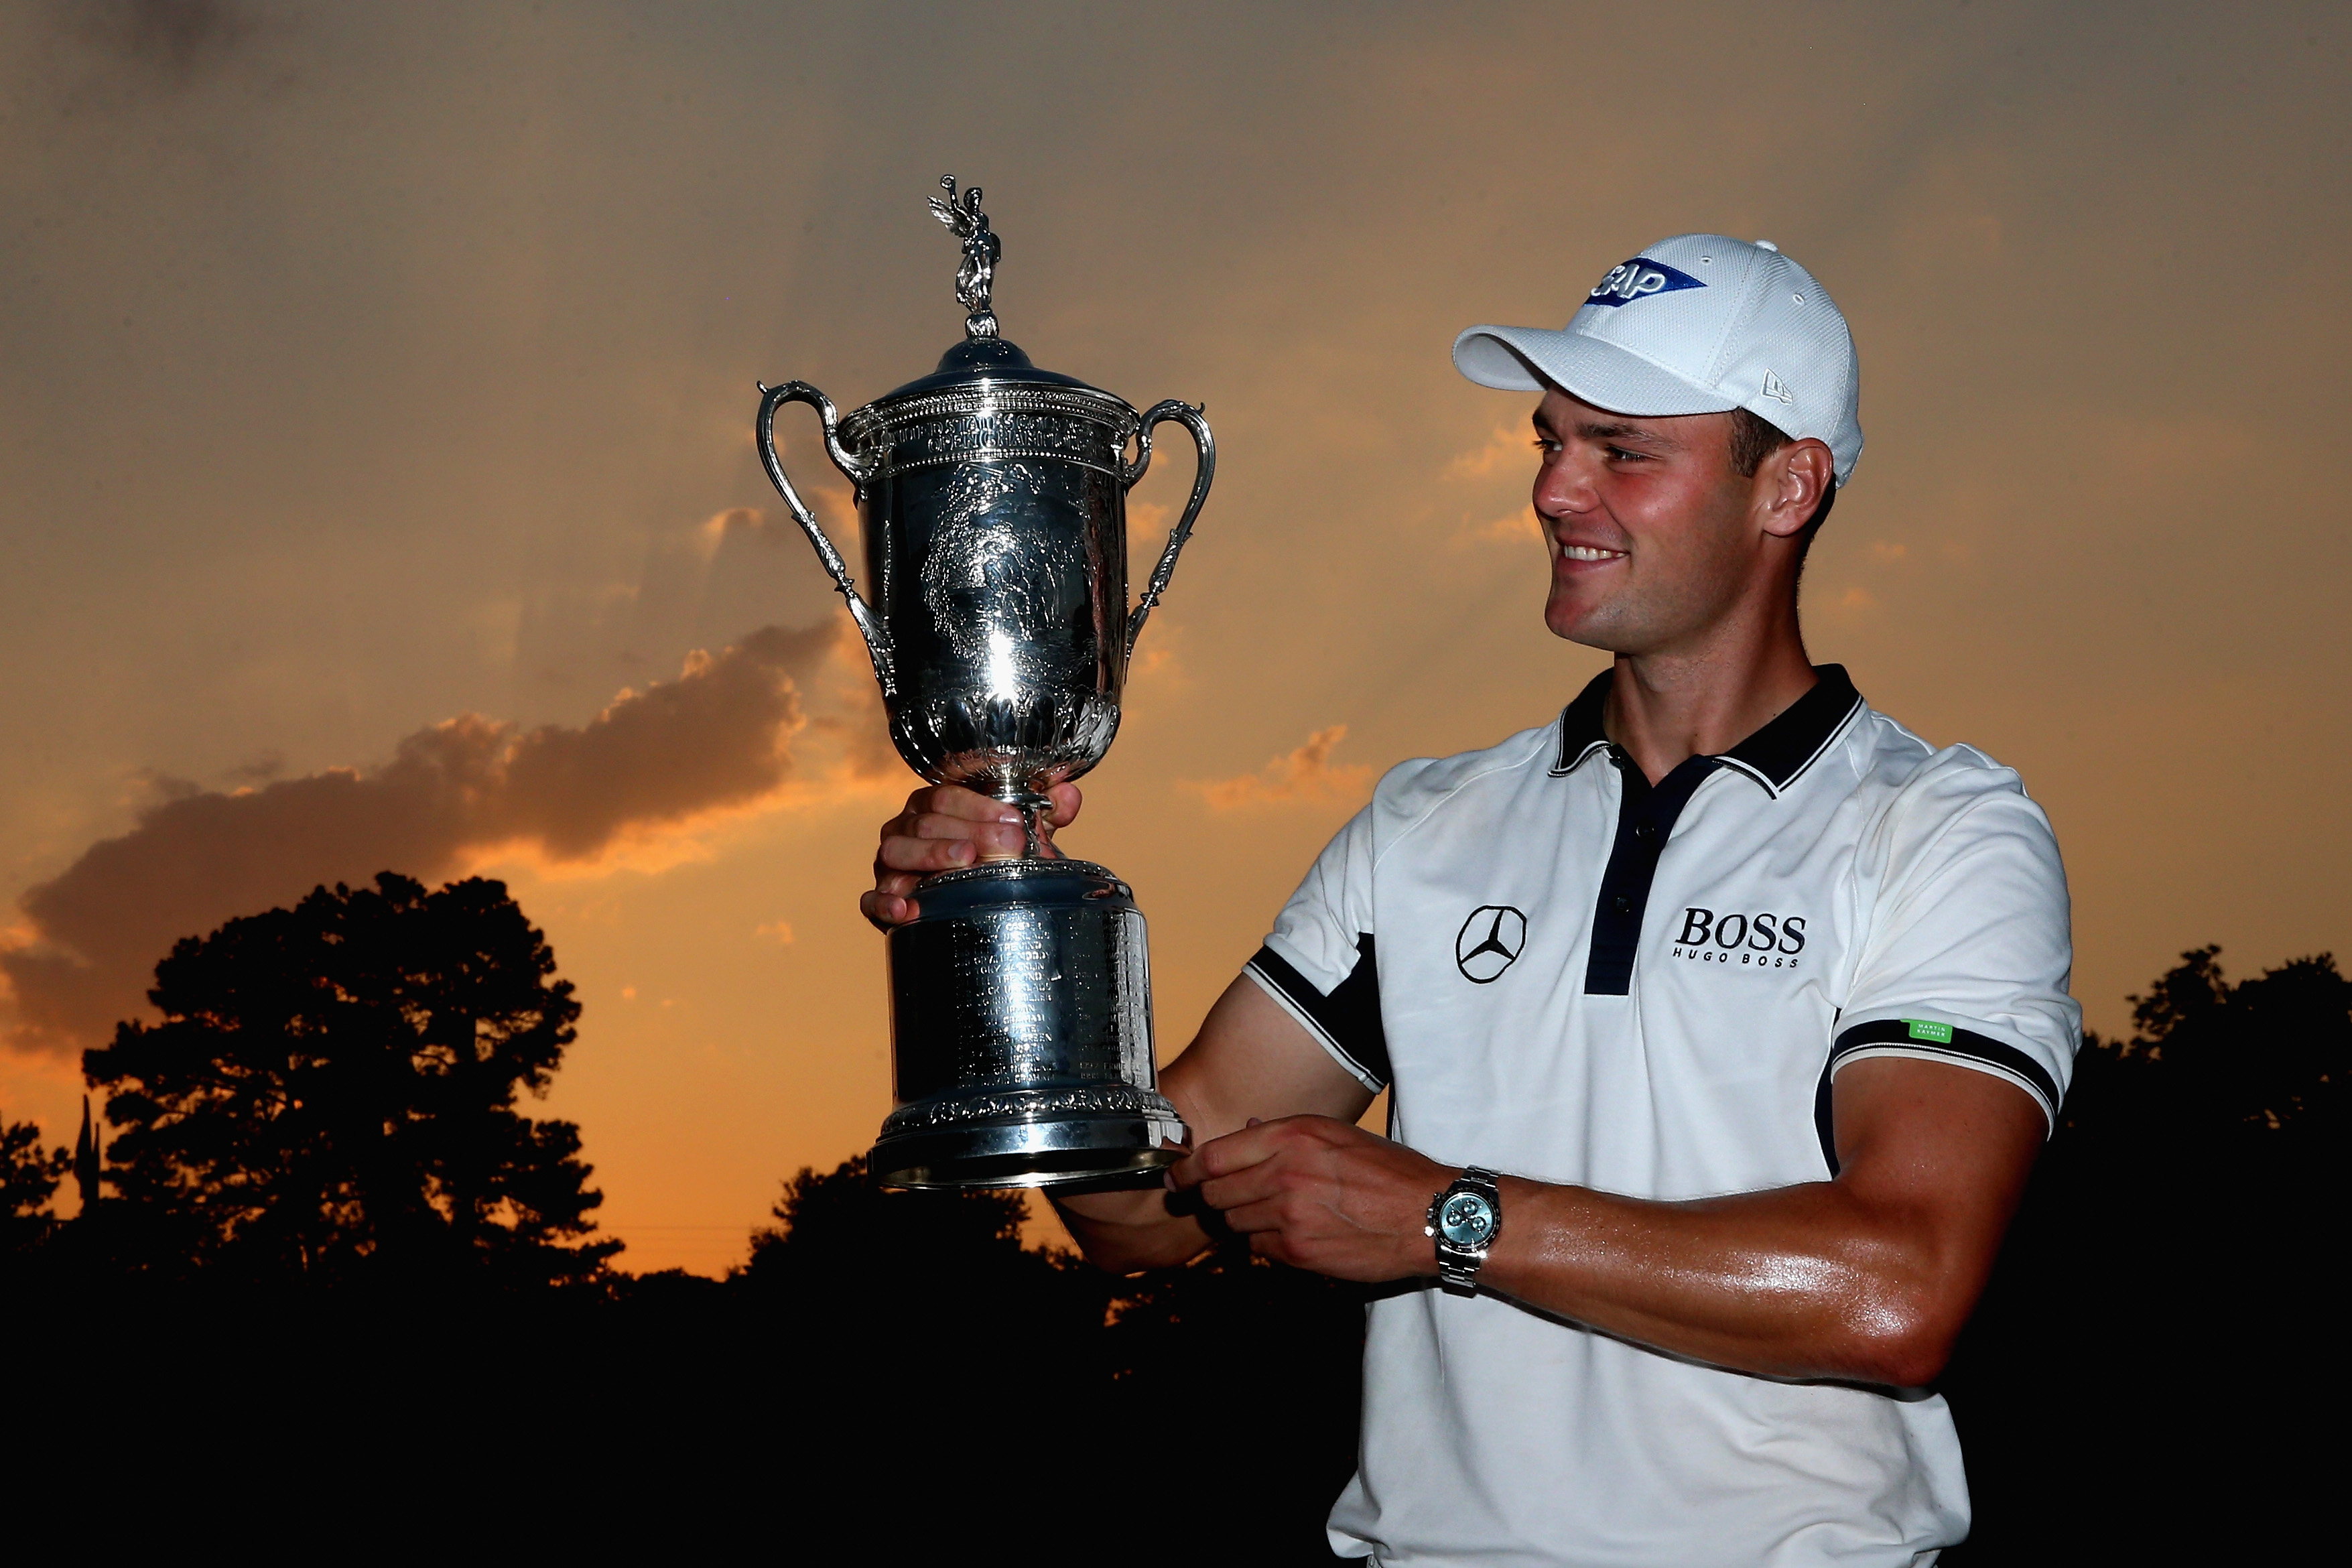 Martin Kaymer has lost his PGA Tour card for not playing 15 events (Photo: Getty Images)